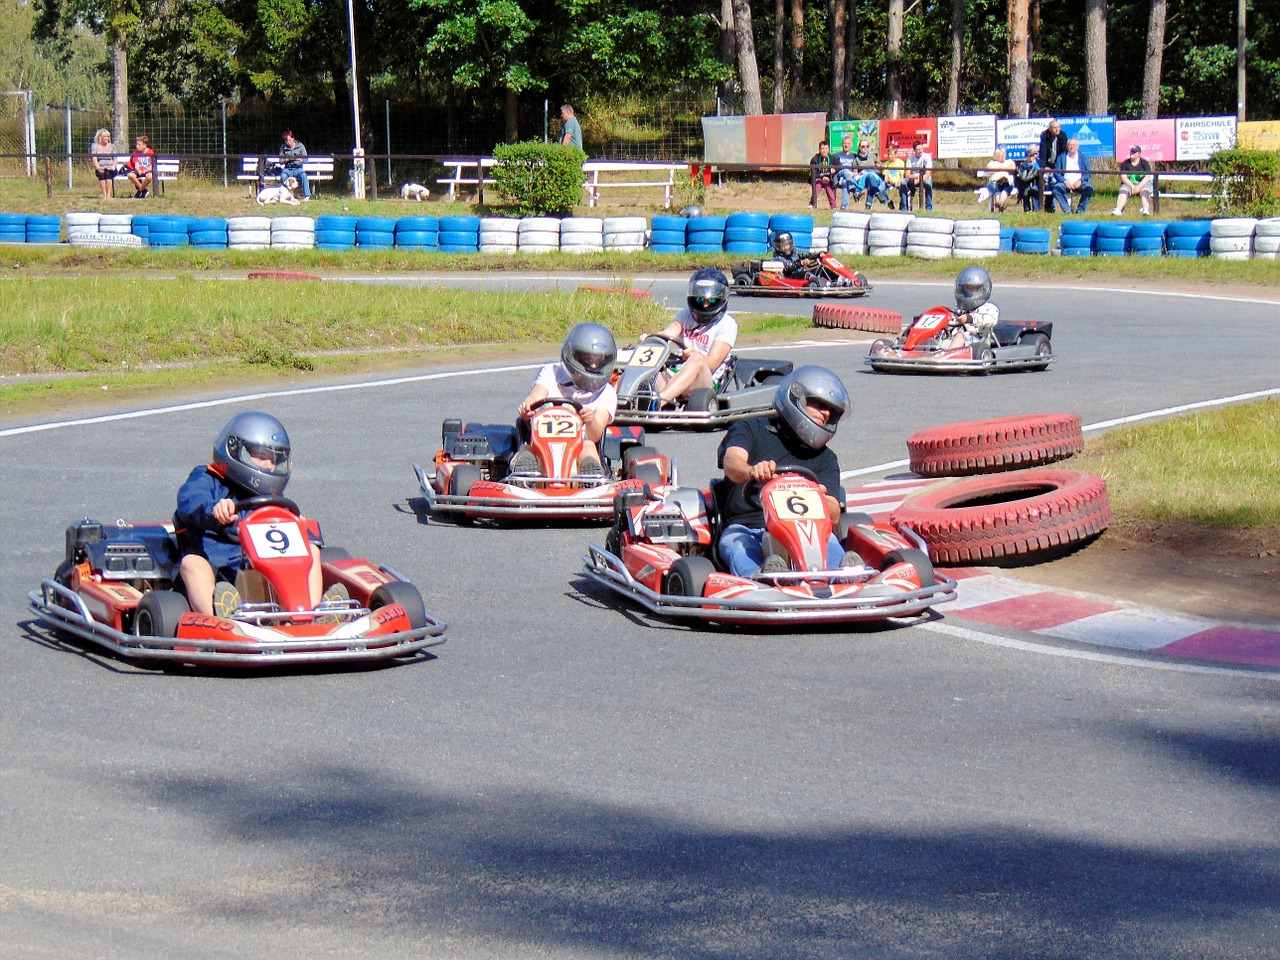 Multiple people driving a go kart